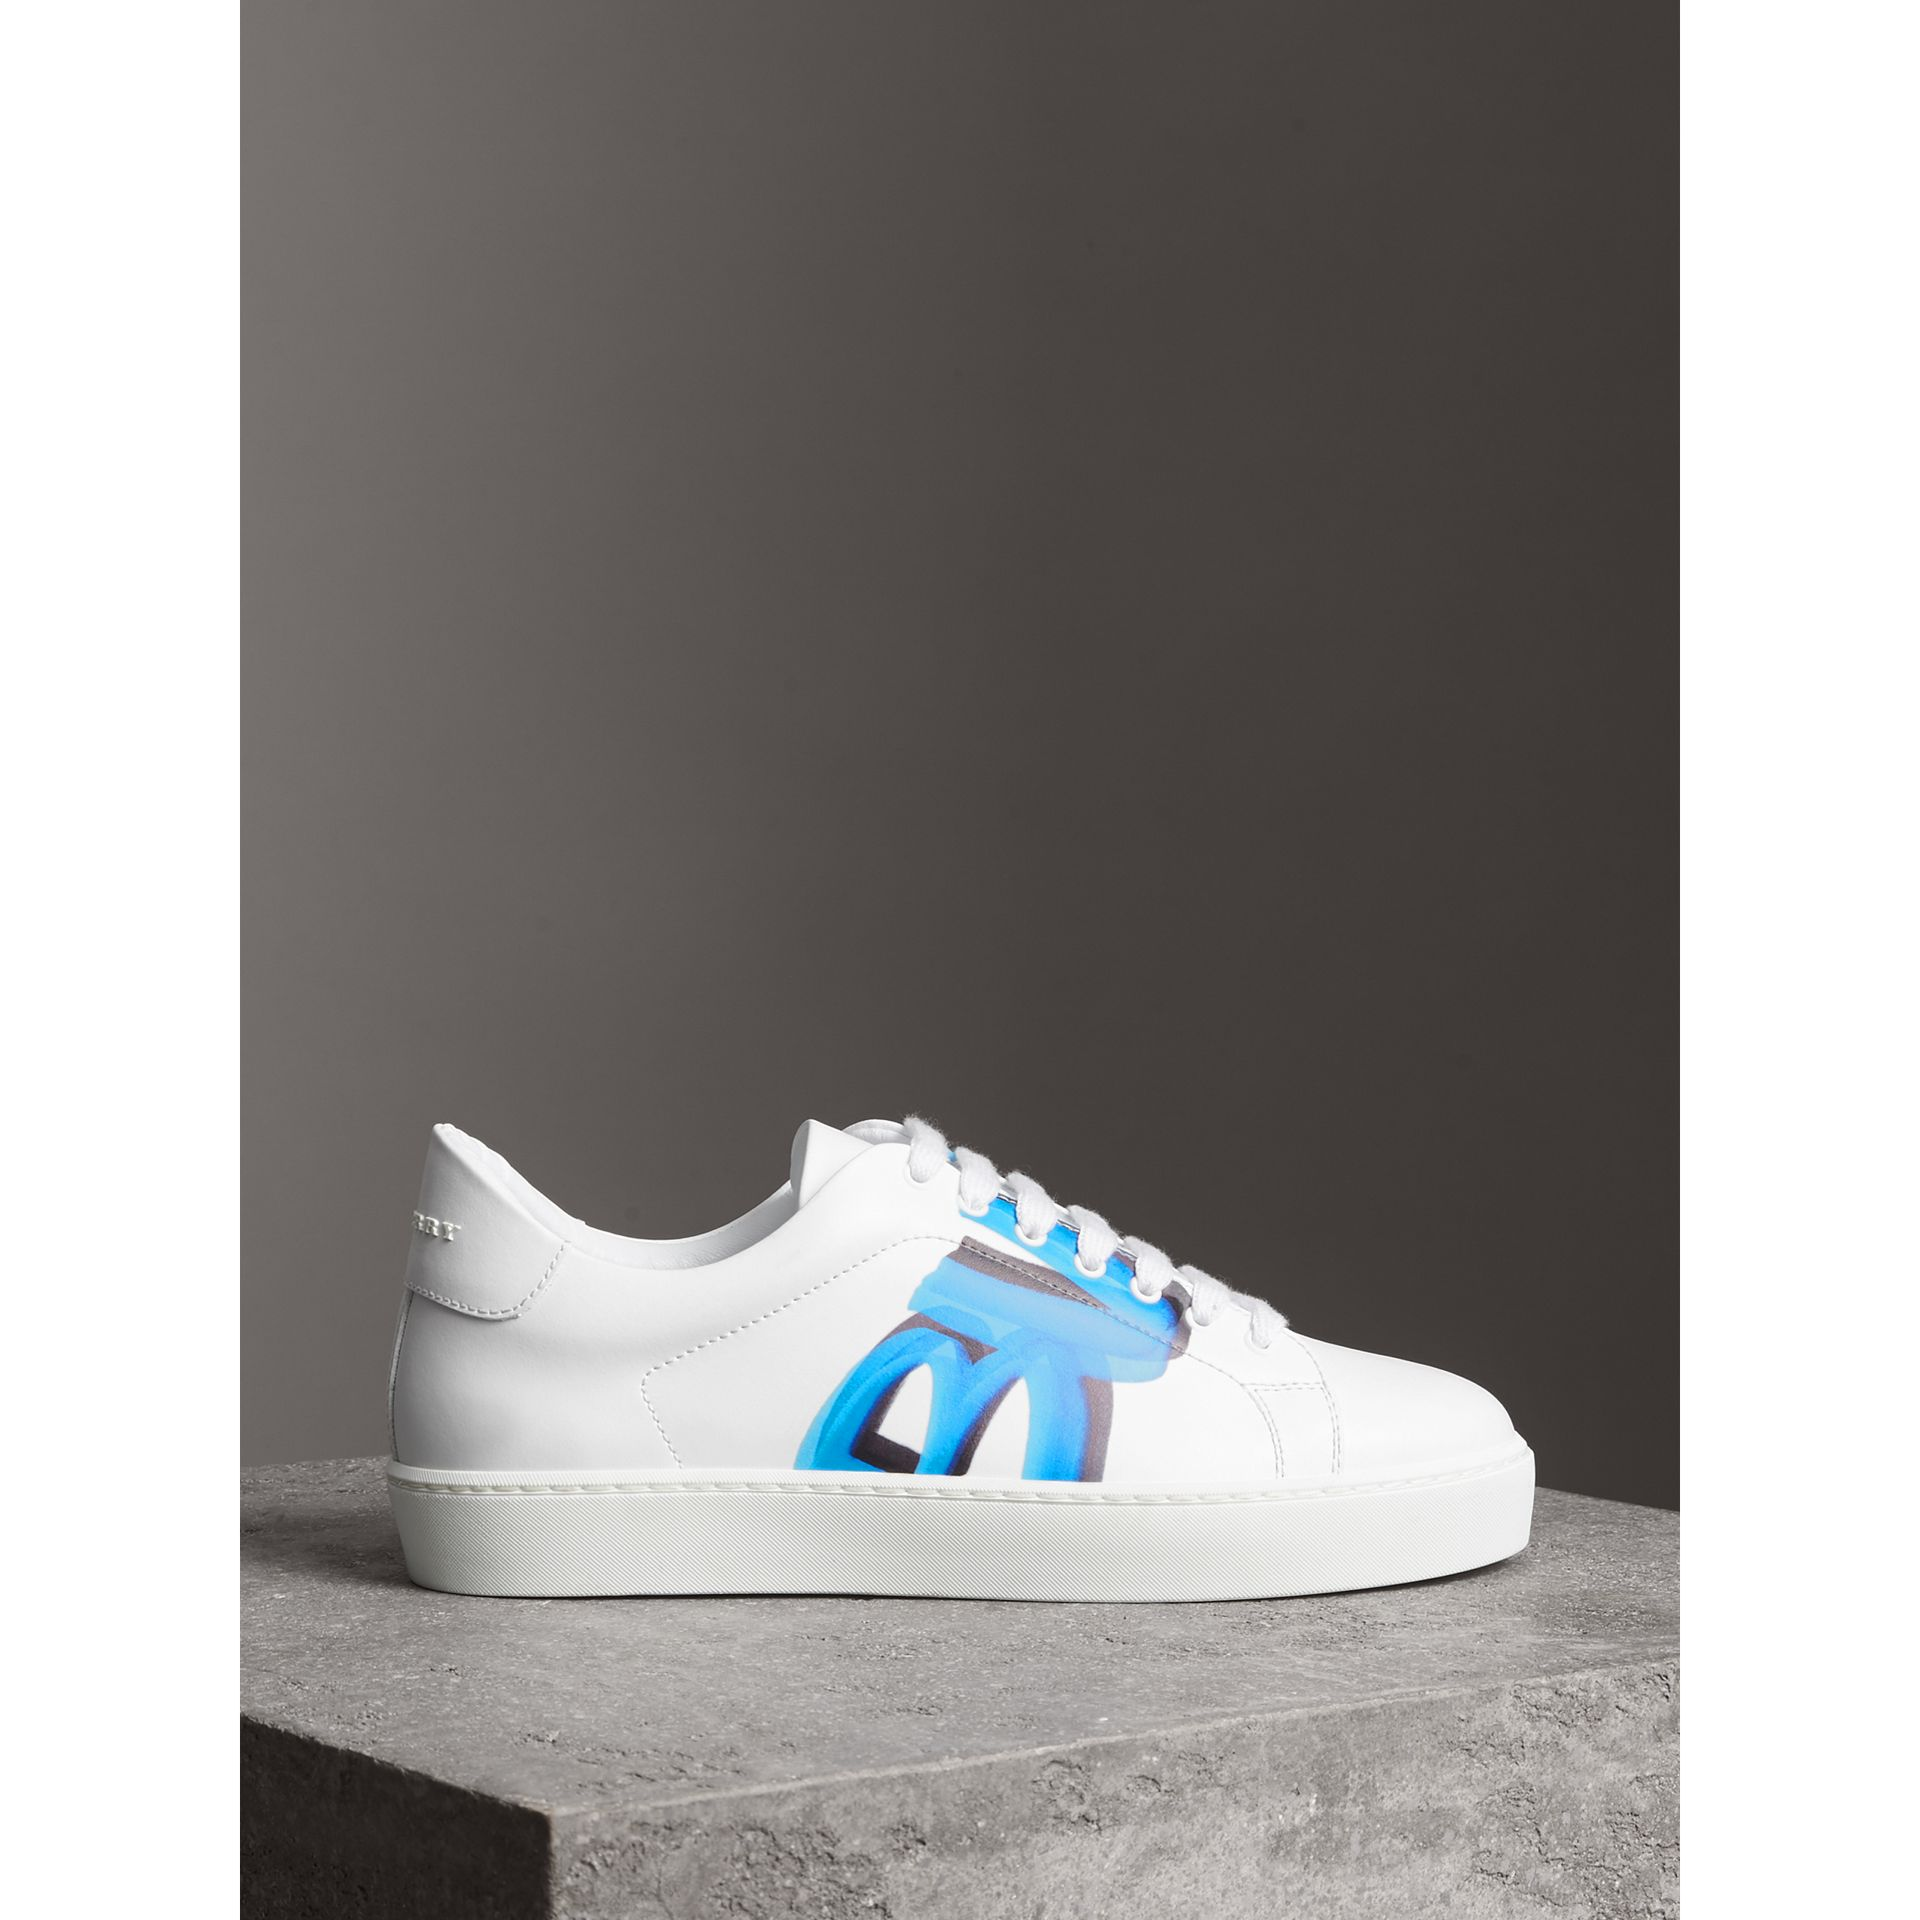 Graffiti Print Leather Sneakers in Bright Sky Blue - Women | Burberry Canada - gallery image 4